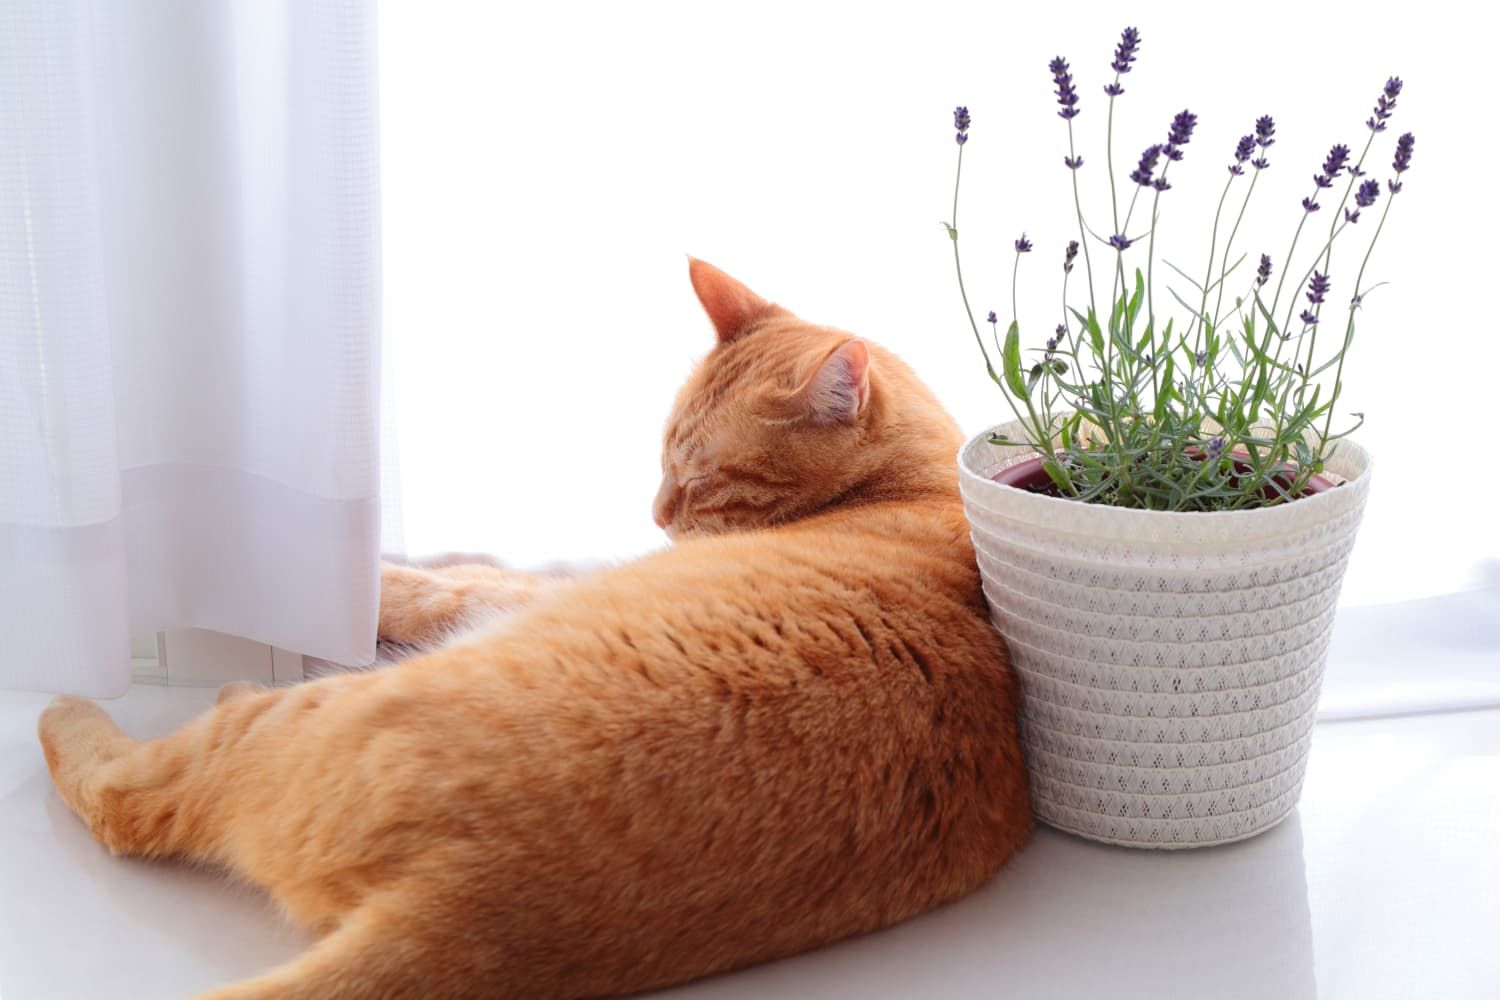 Are Essential Oils Like Lavender Safe for Cats? Cats